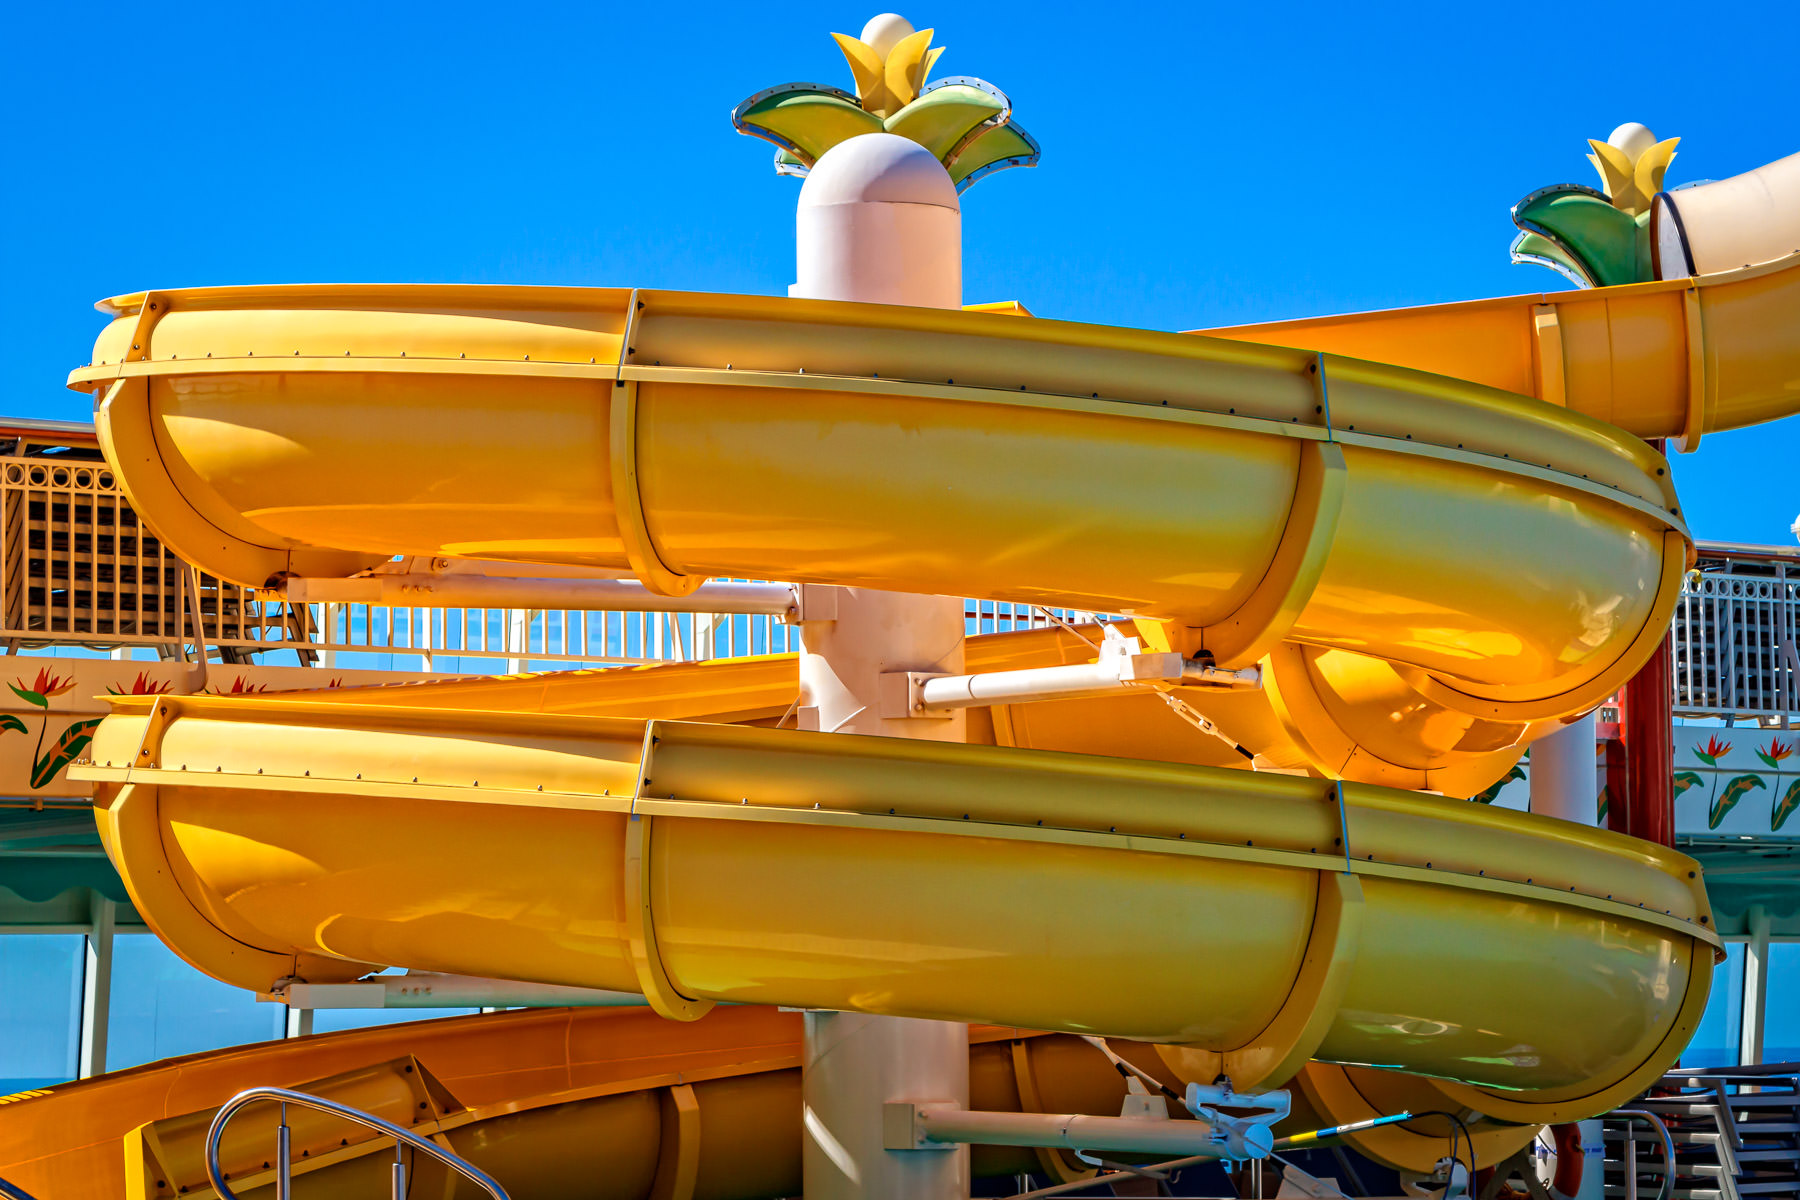 One of the waterslides aboard the cruise shipNorwegian Pearl.